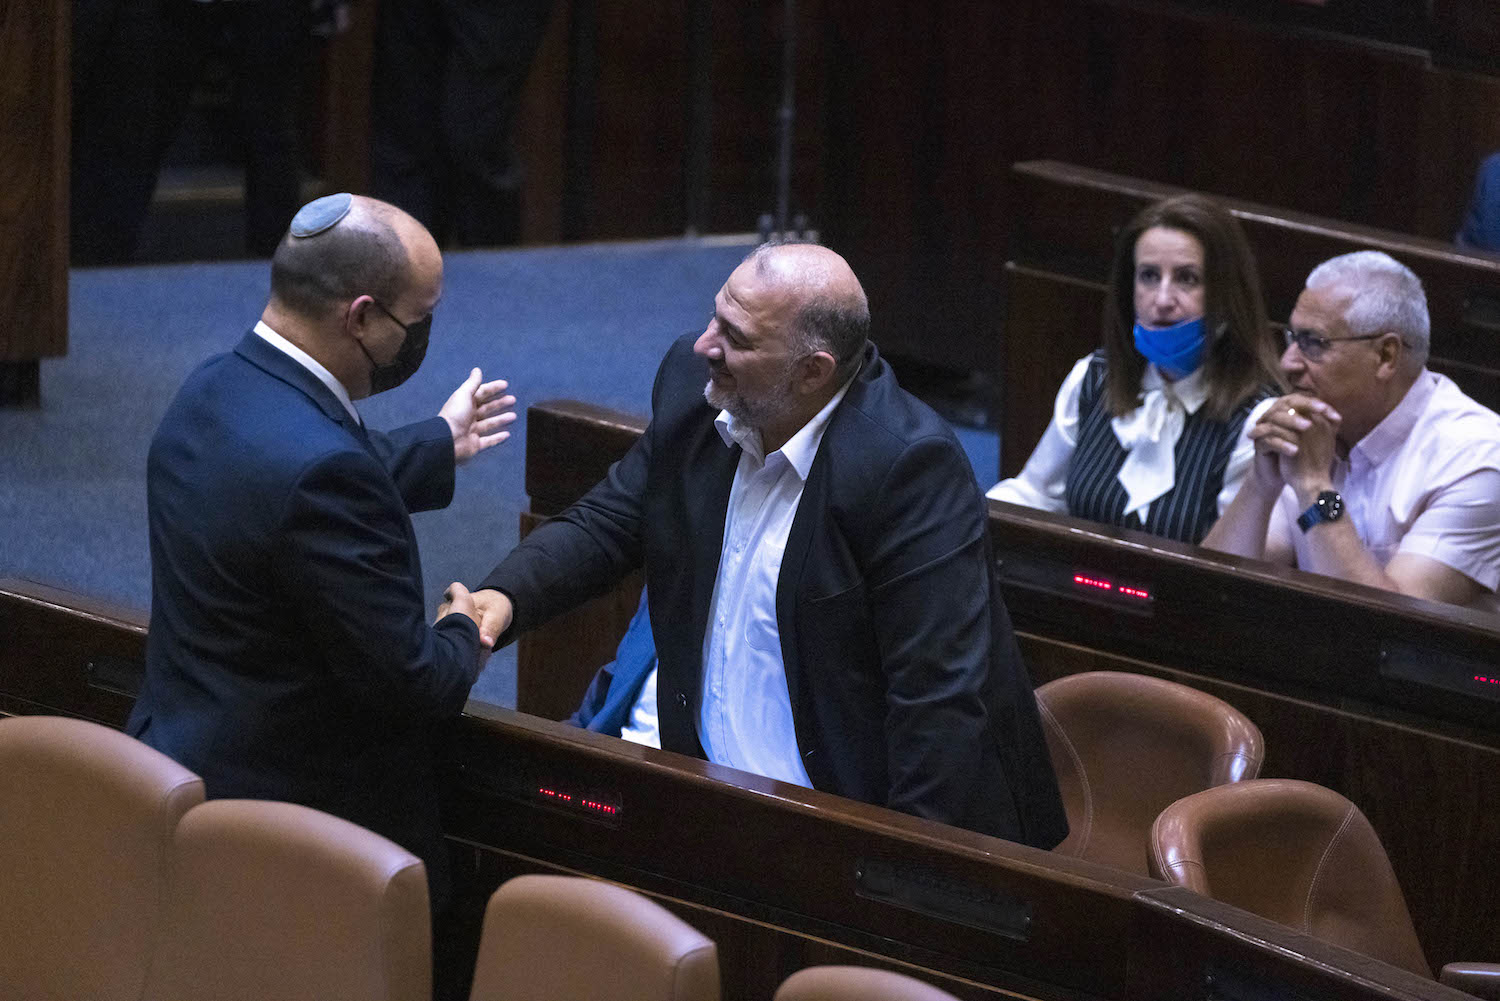 Prime Minister Naftali Bennet shakes hands with head of the Ra'am party, Mansour Abbas, during a plenary session at the assembly of the Knesset, June 28, 2021. (Olivier Fitoussi/Flash90)